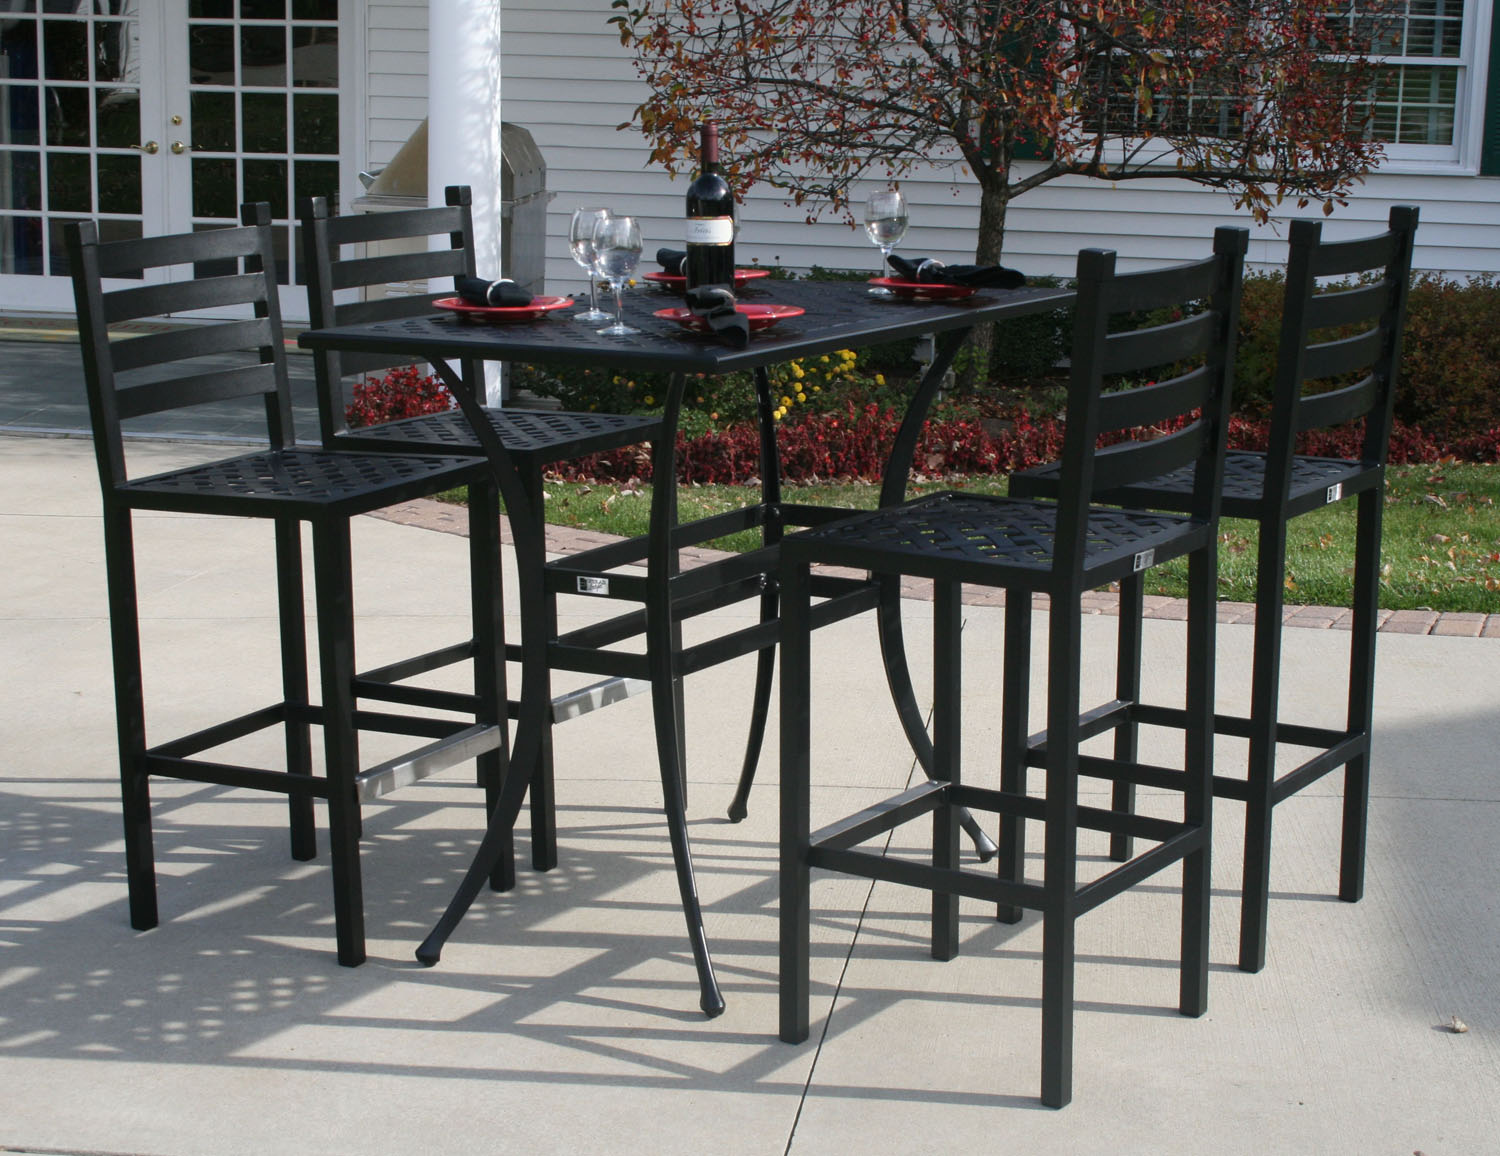 patio bar furniture Quotes : the ansley collection 4 person all welded cast aluminum patio furniture bar height set 7 from quoteimg.com size 1500 x 1156 jpeg 316kB